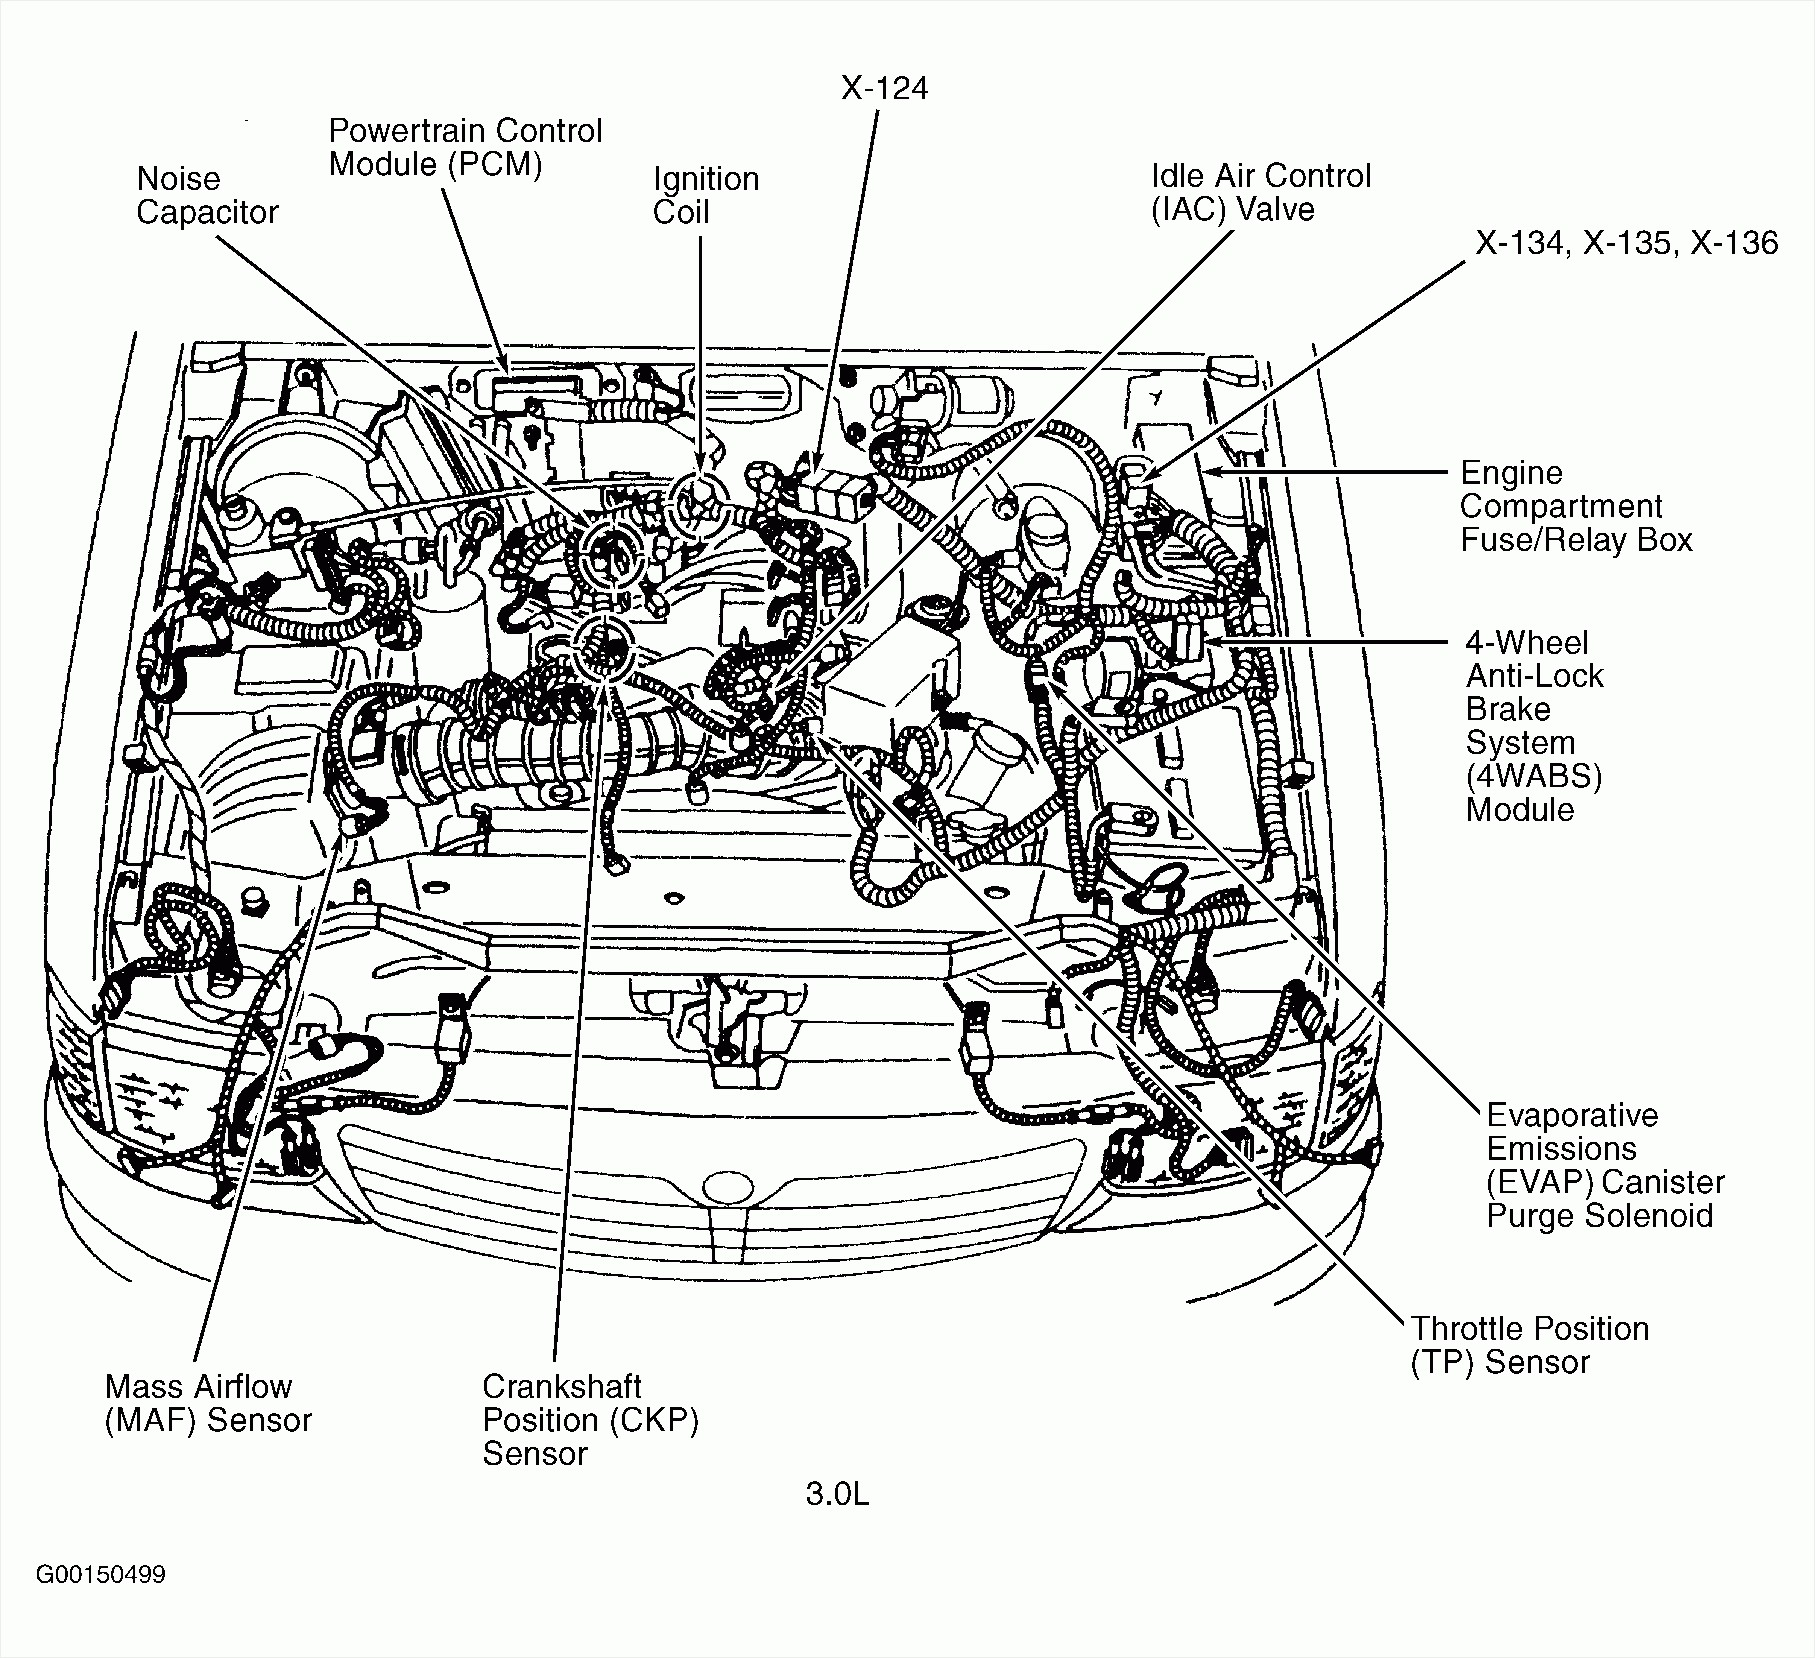 hight resolution of 2004 vw beetle engine diagram data wiring diagram 2004 vw beetle turbo diagram